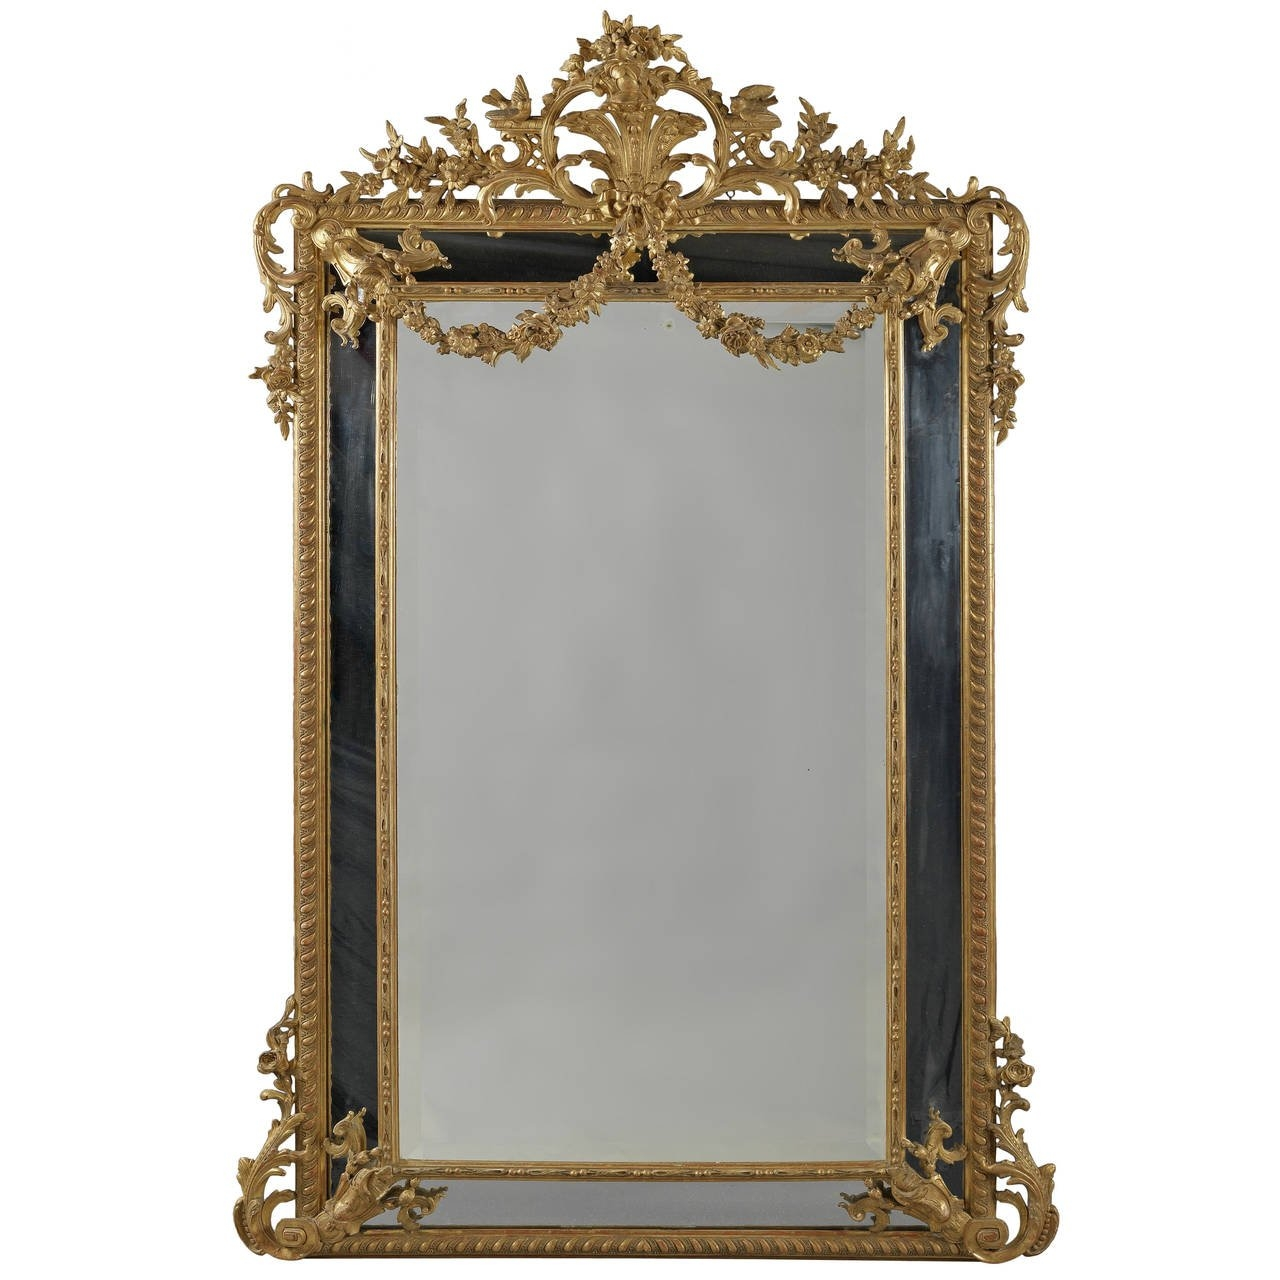 Large Antique Mirror For Sale At 1stdibs Inside Large Antique Mirrors For Sale (Image 11 of 15)